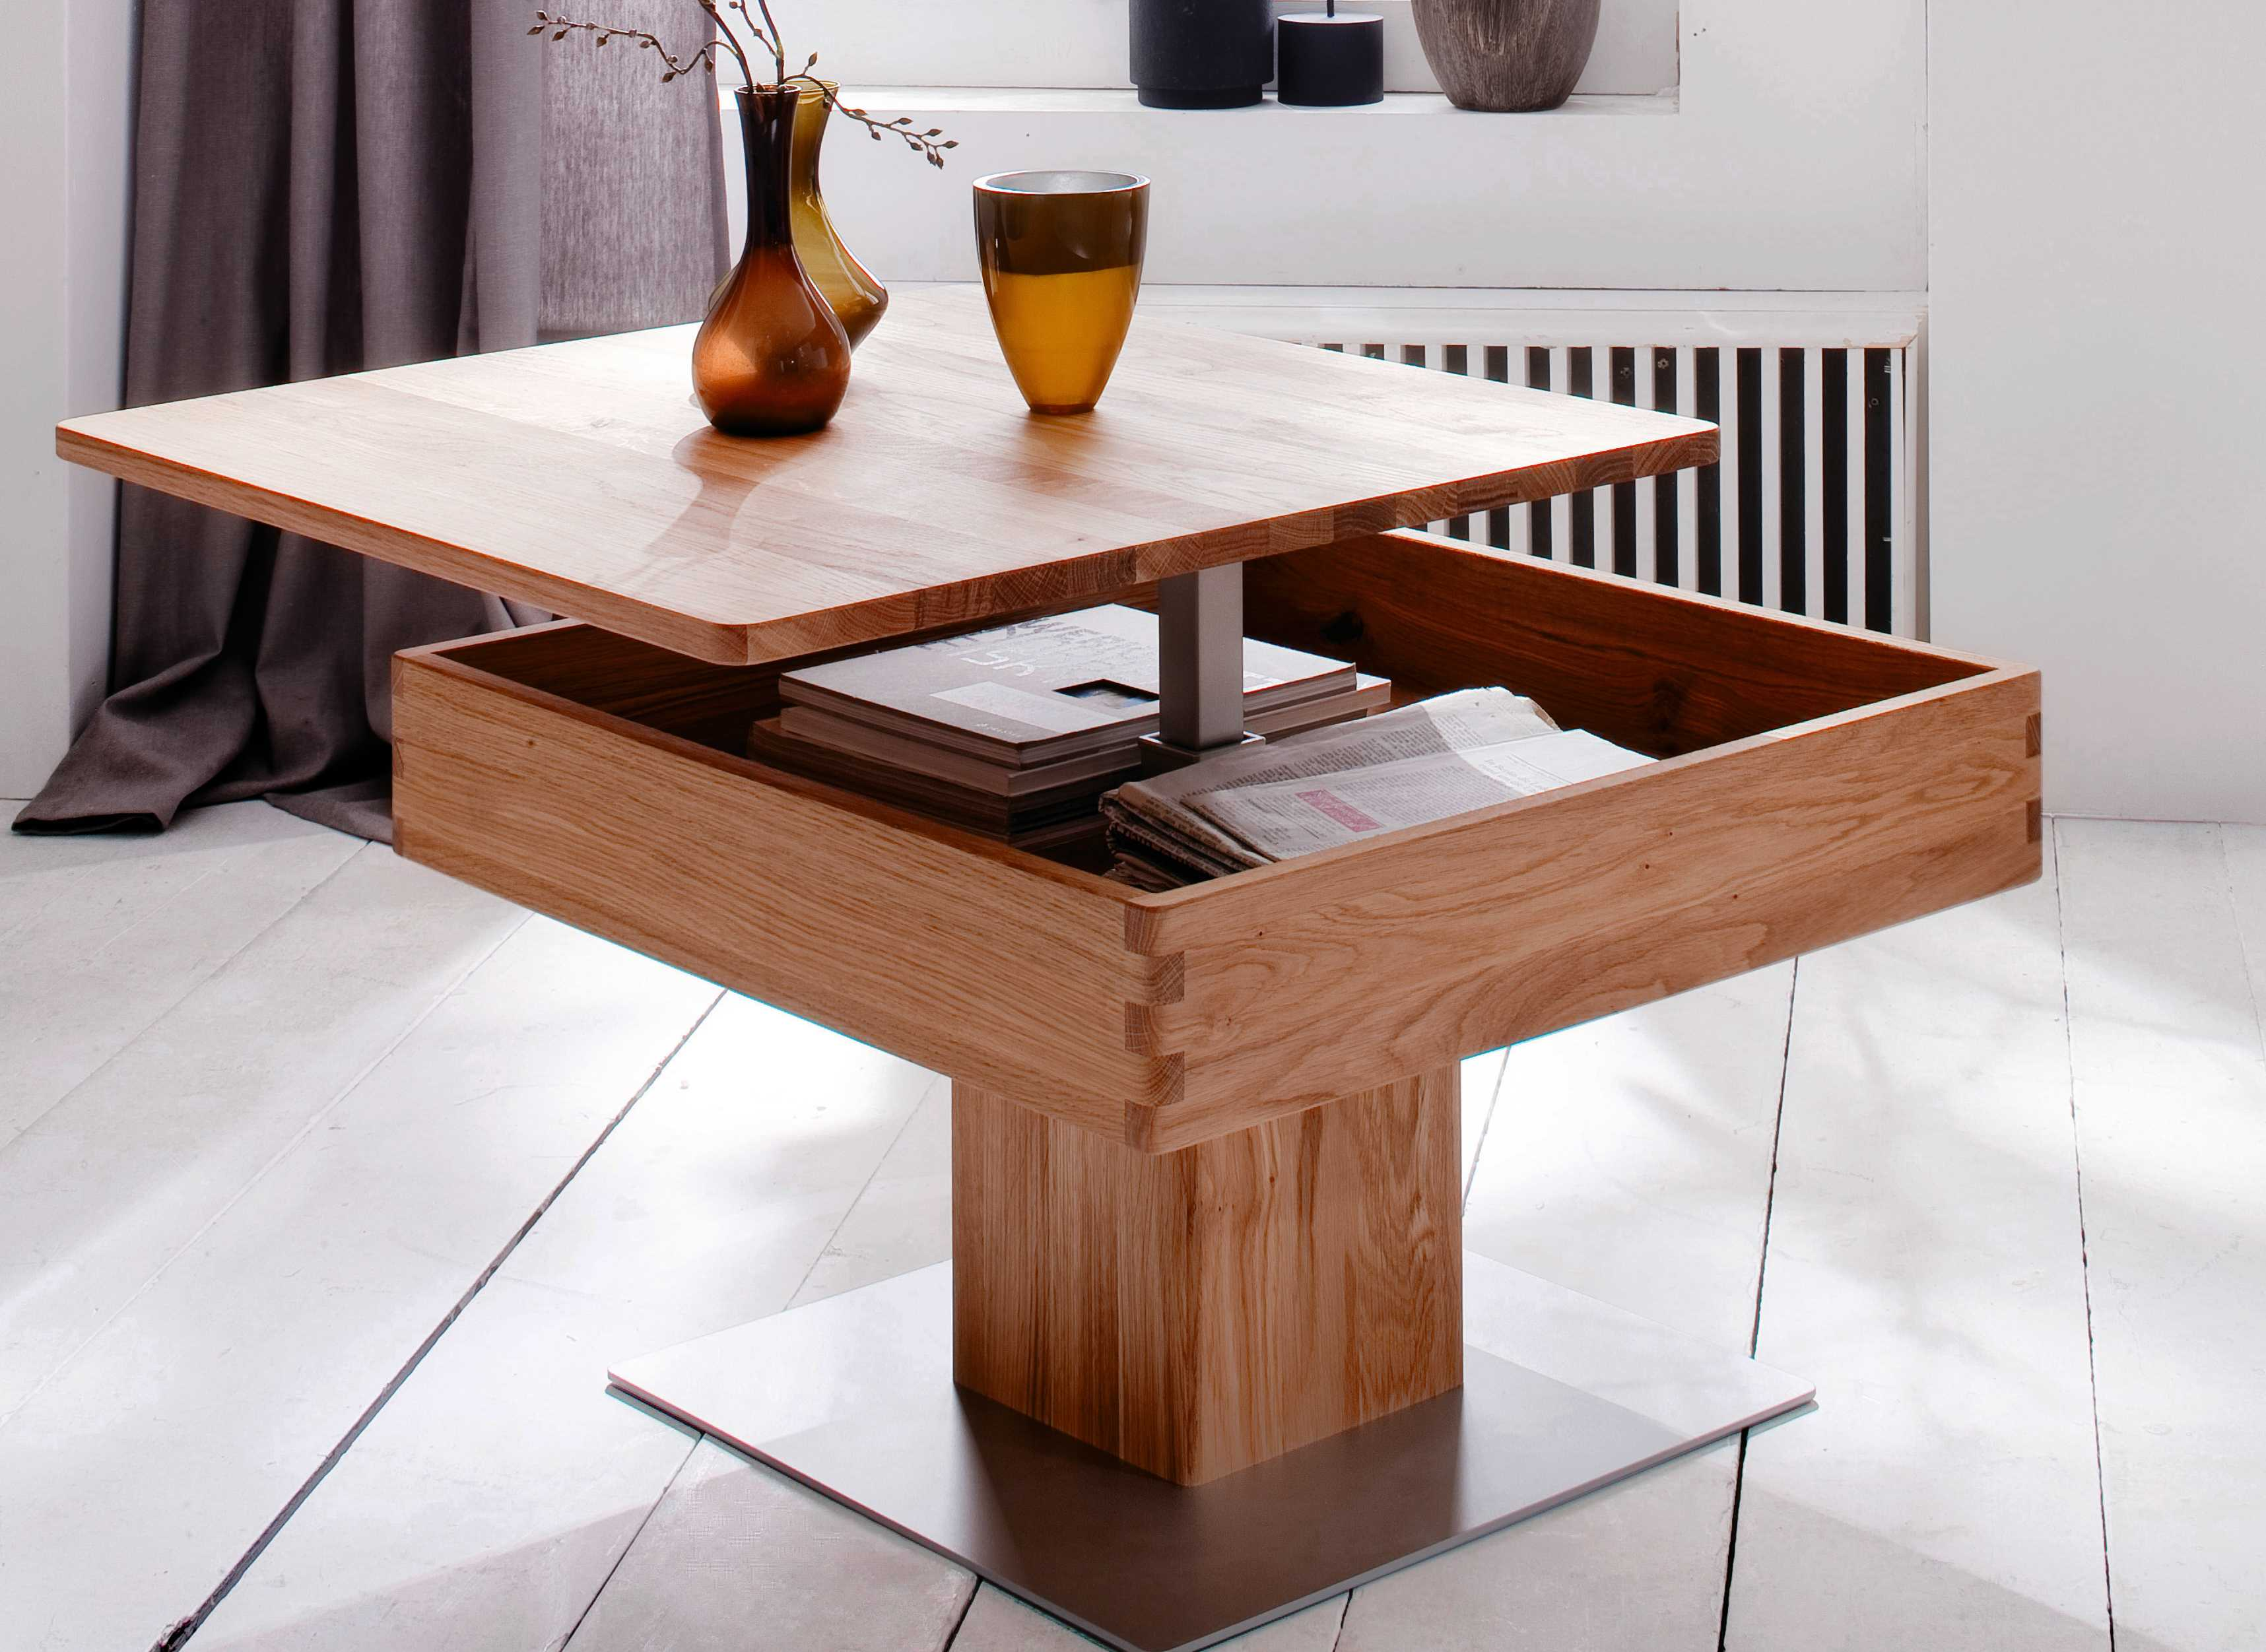 Couchtisch Eve-collection Rimini Eve Collection Couchtisch Couchtisch Almeria Holz Eiche